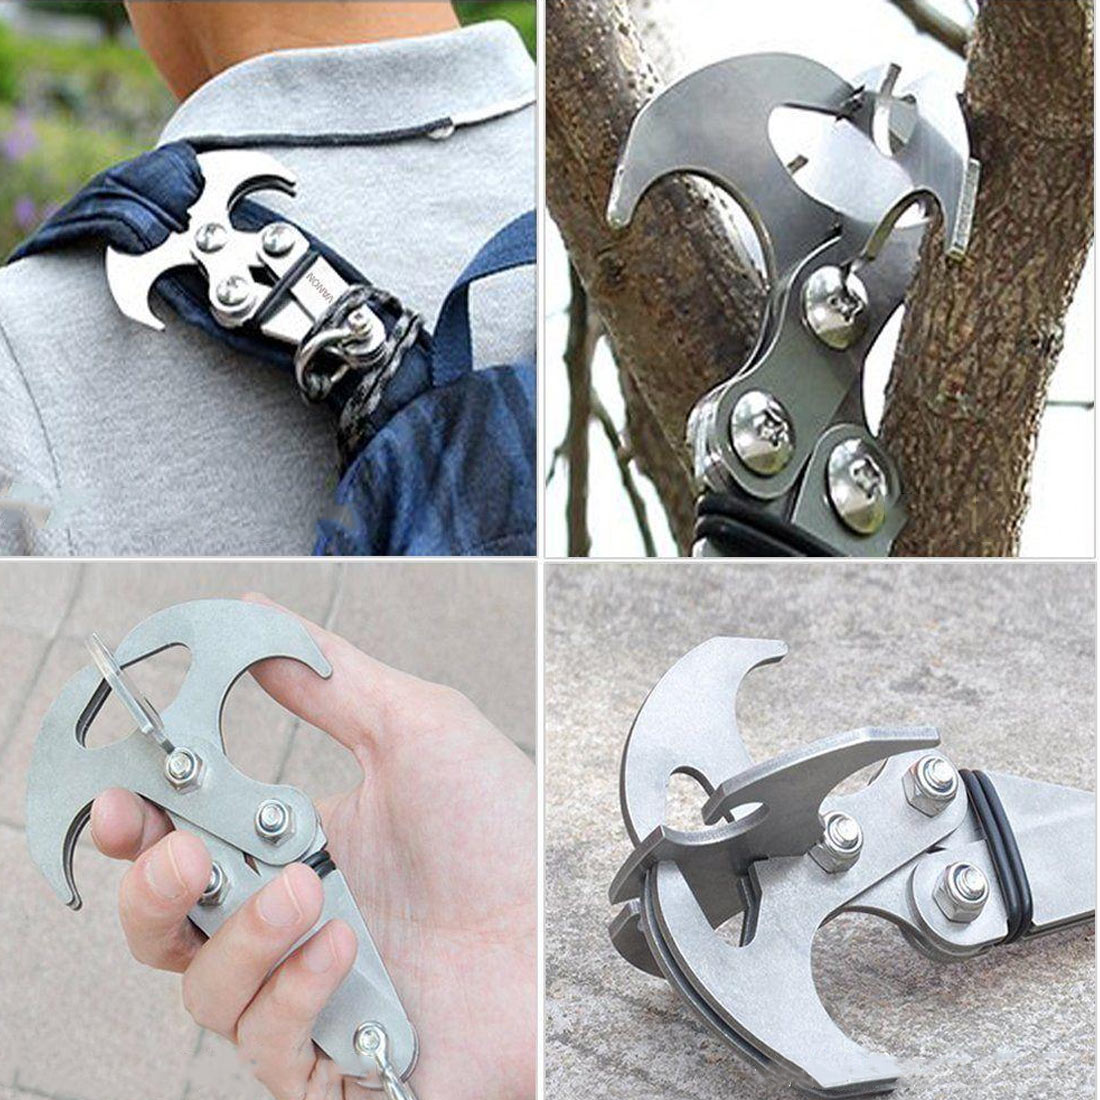 Survival Folding Grappling Hook Outdoor Climbing Claw Accessories Key Chain